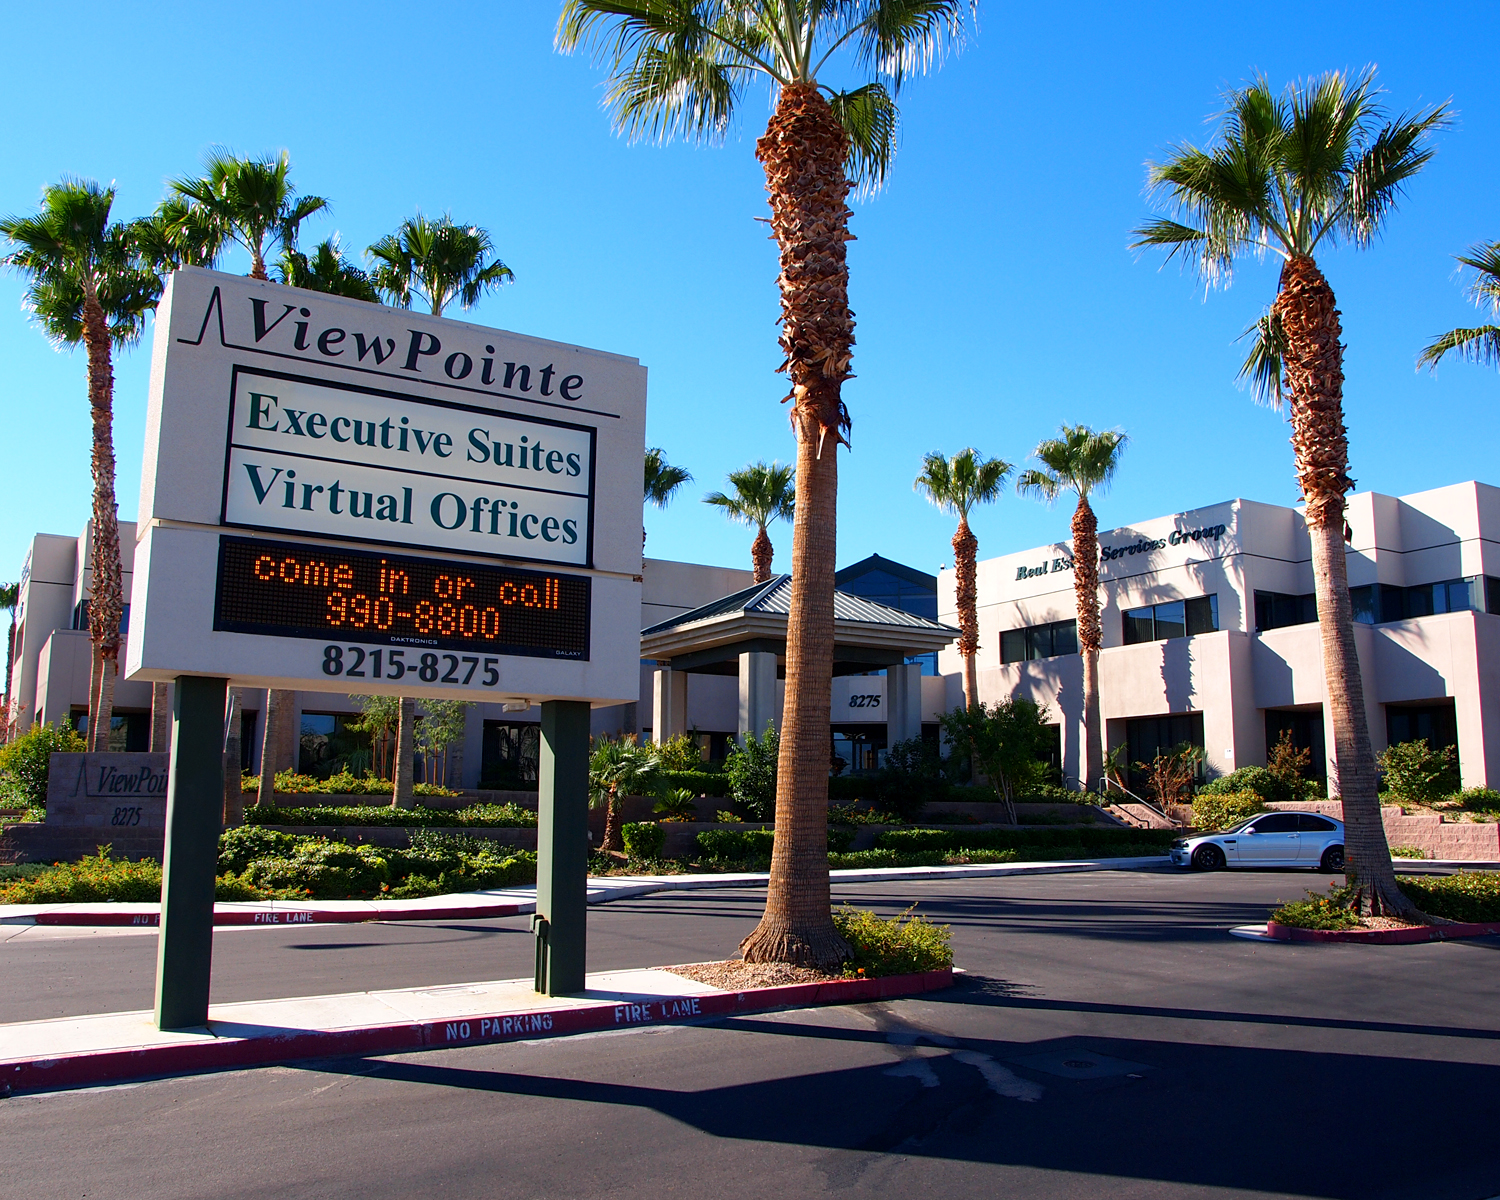 ViewPointe Executive Suites - Contact us if you are thinking of downsizing and in need of a Las Vegas mailing address!